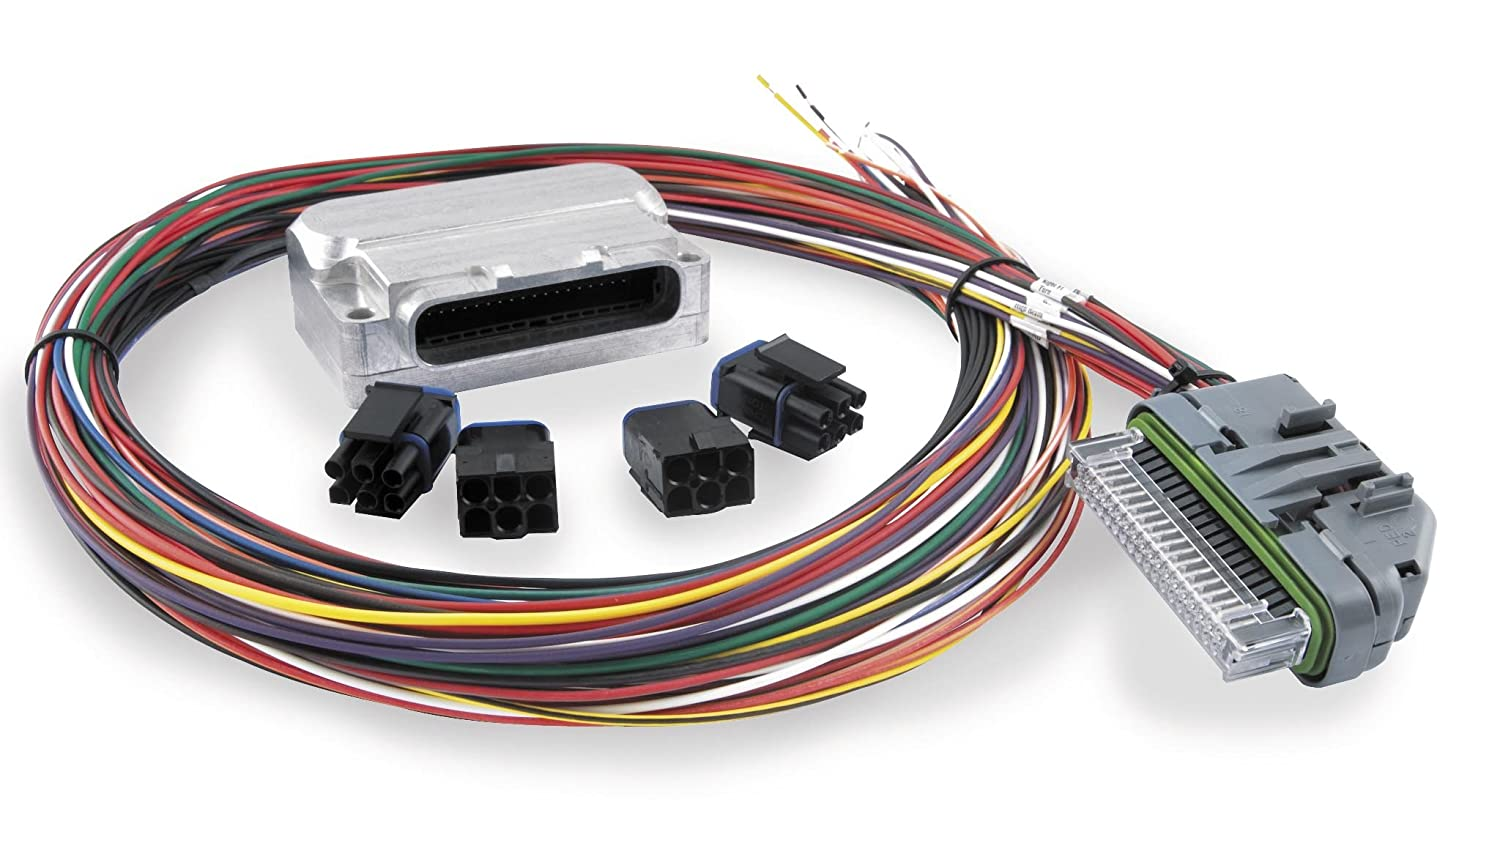 71dtjXlh7yL._SL1500_ amazon com thunder heart performance micro harness controller thunderheart ignition wiring diagram at letsshop.co